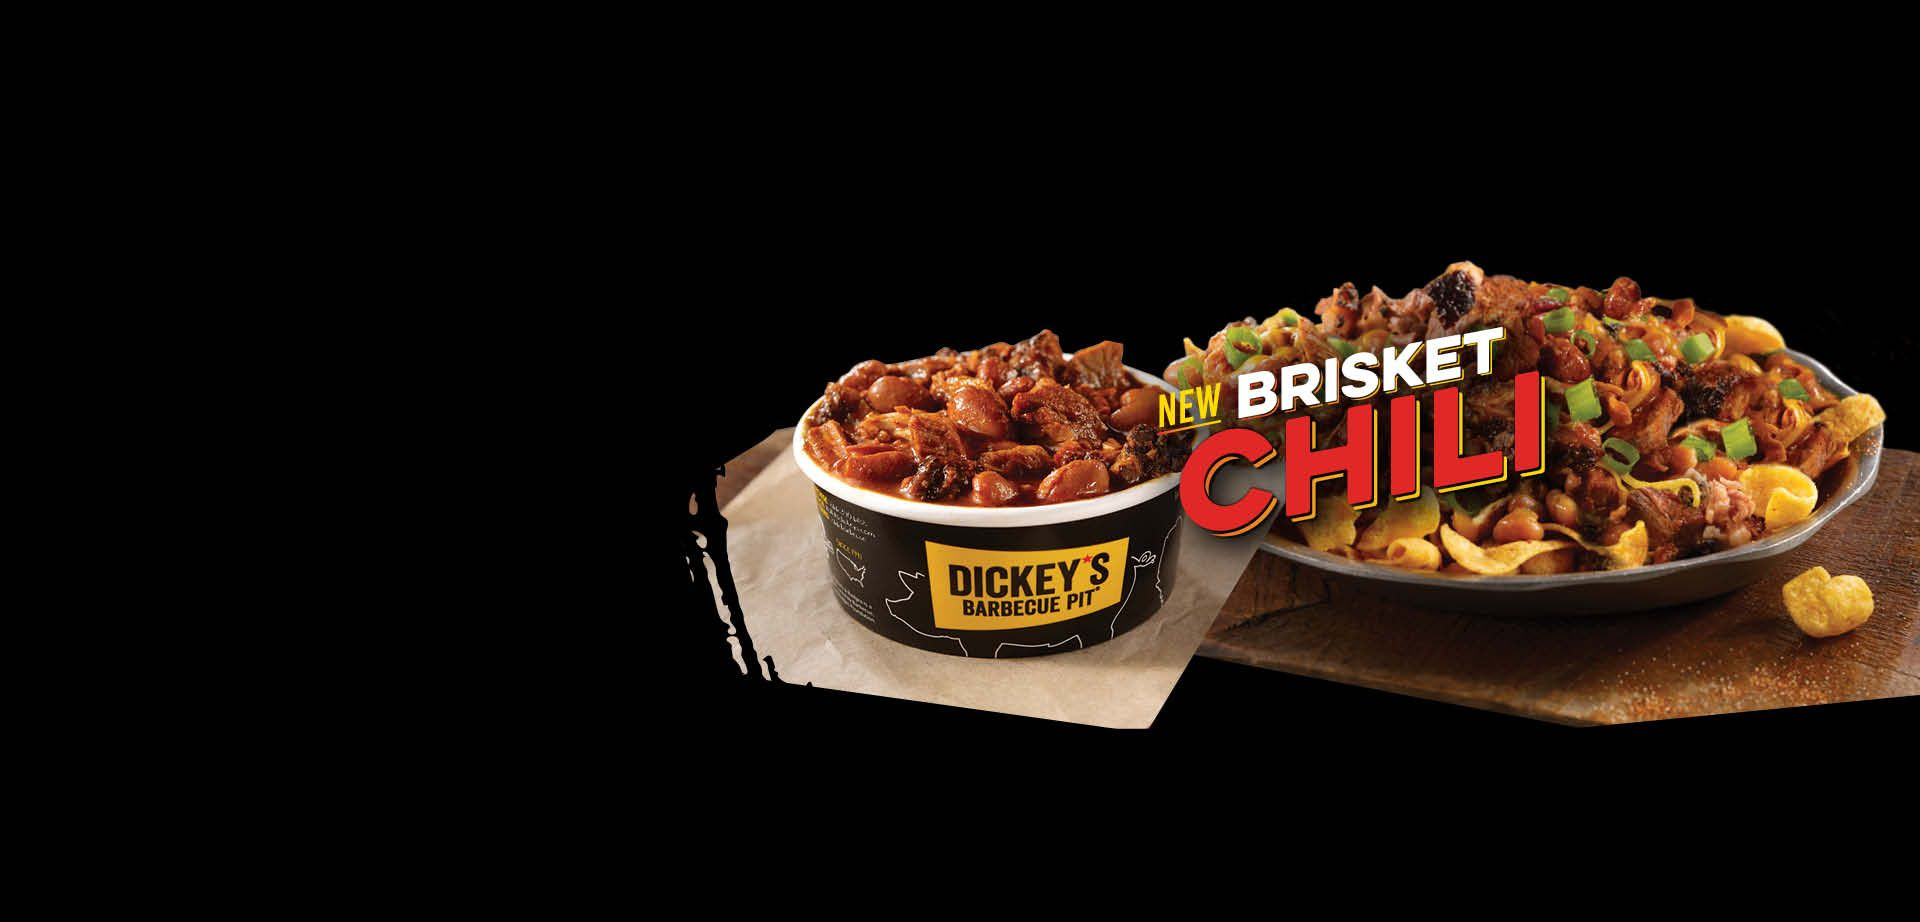 Warm up with our New Brisket Chili